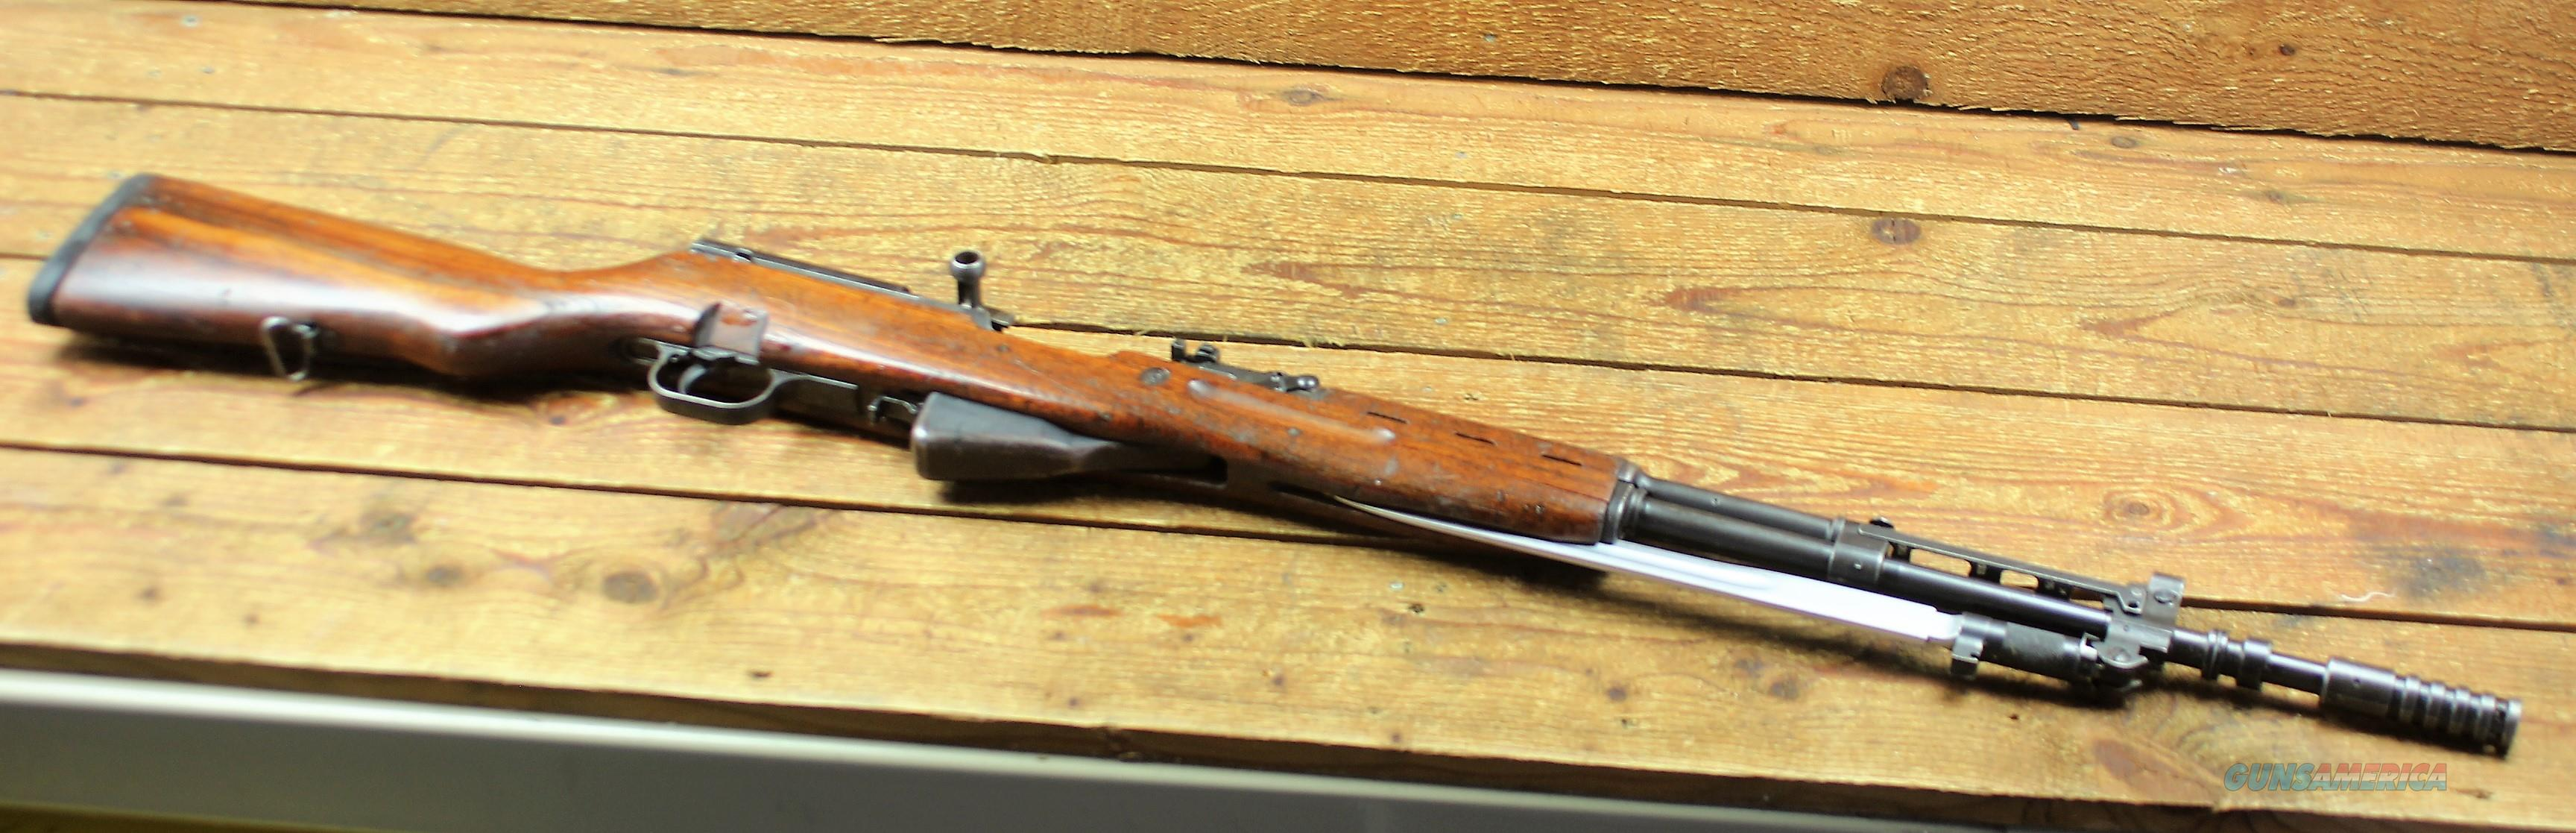 CI ZASTAVA M59/66A1 SKS AK47 ak47 SERIAL NUMBER G-216779 RI1660EGC   EASY PAY $40 Layaway   Guns > Rifles > Century International Arms - Rifles > Rifles